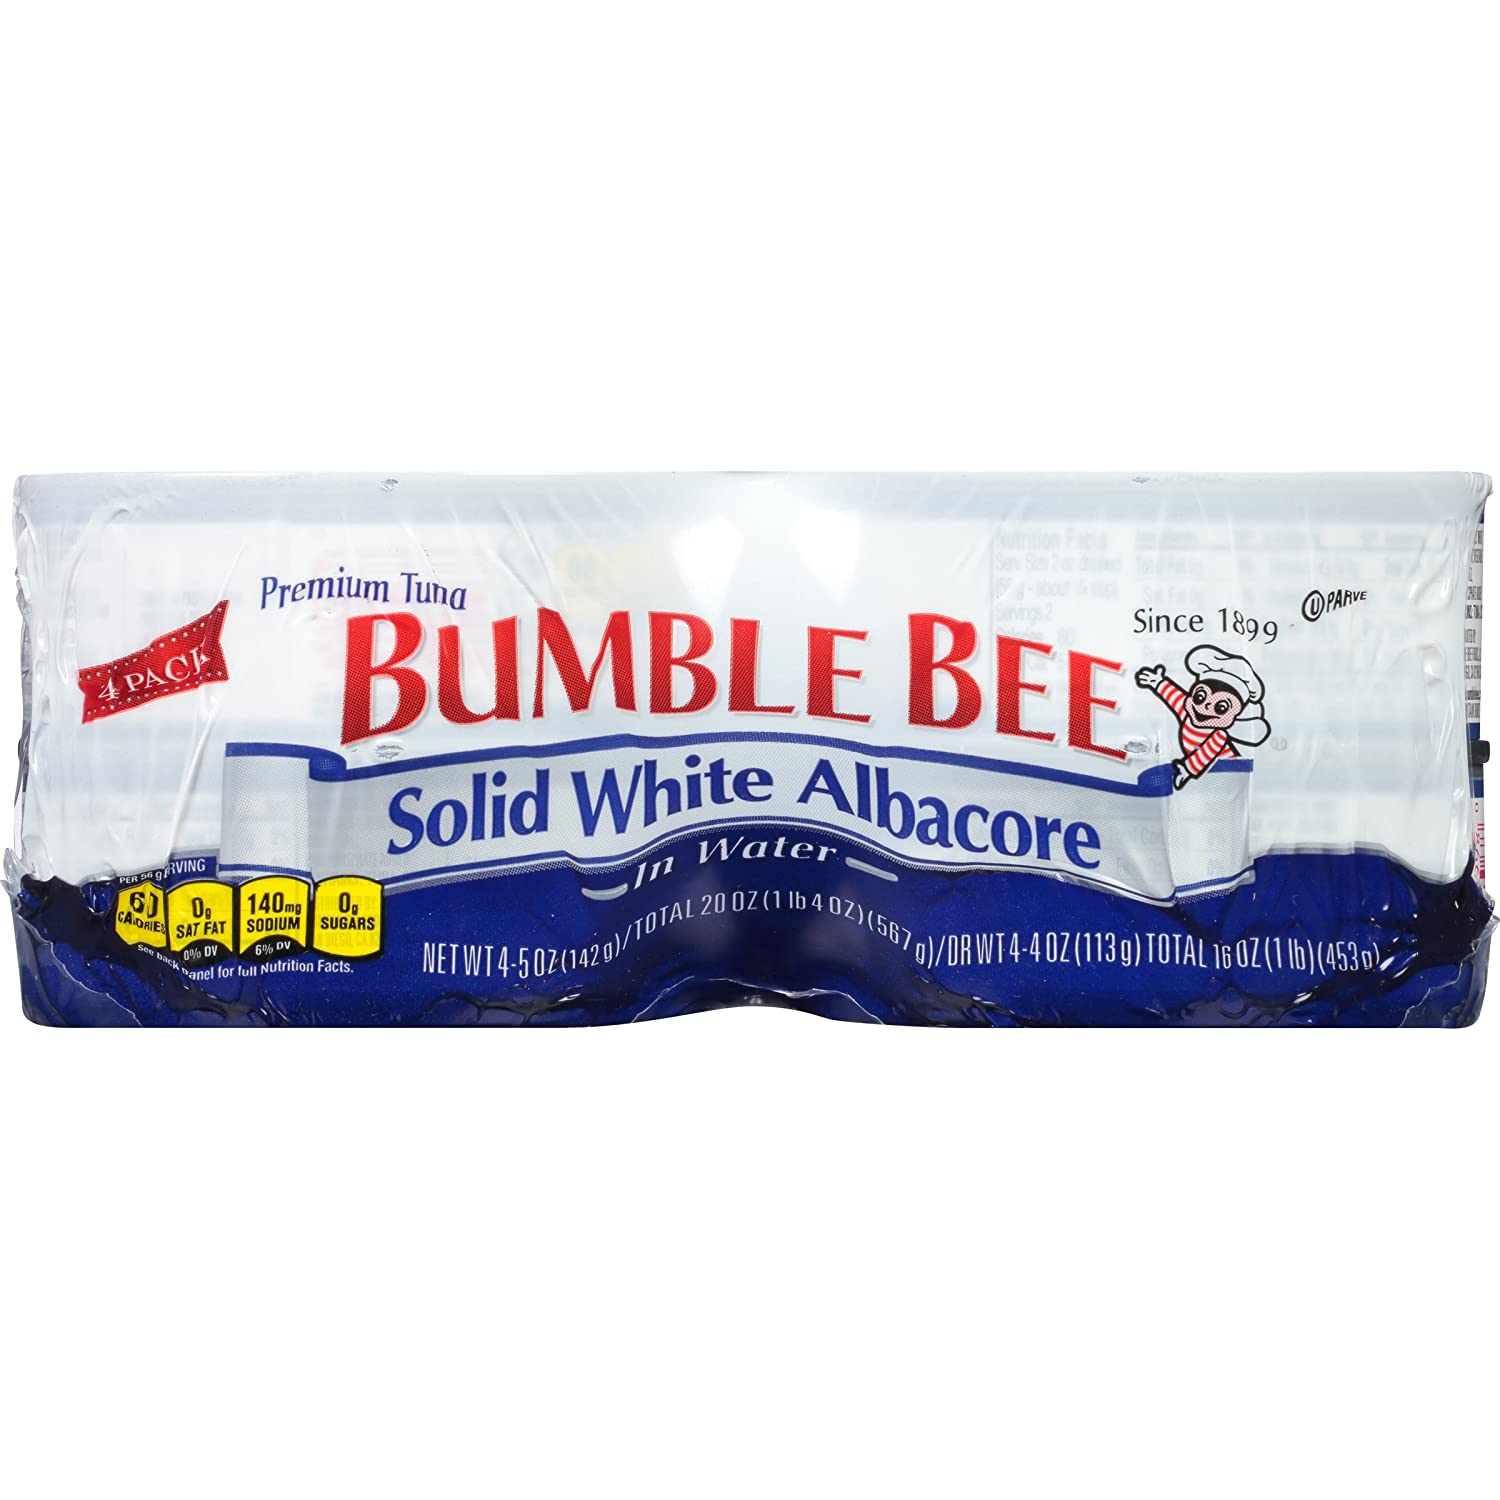 Bumble Bee Solid White Albacore Tuna in Water, 5 oz Cans, 4Count (Pack of 6)